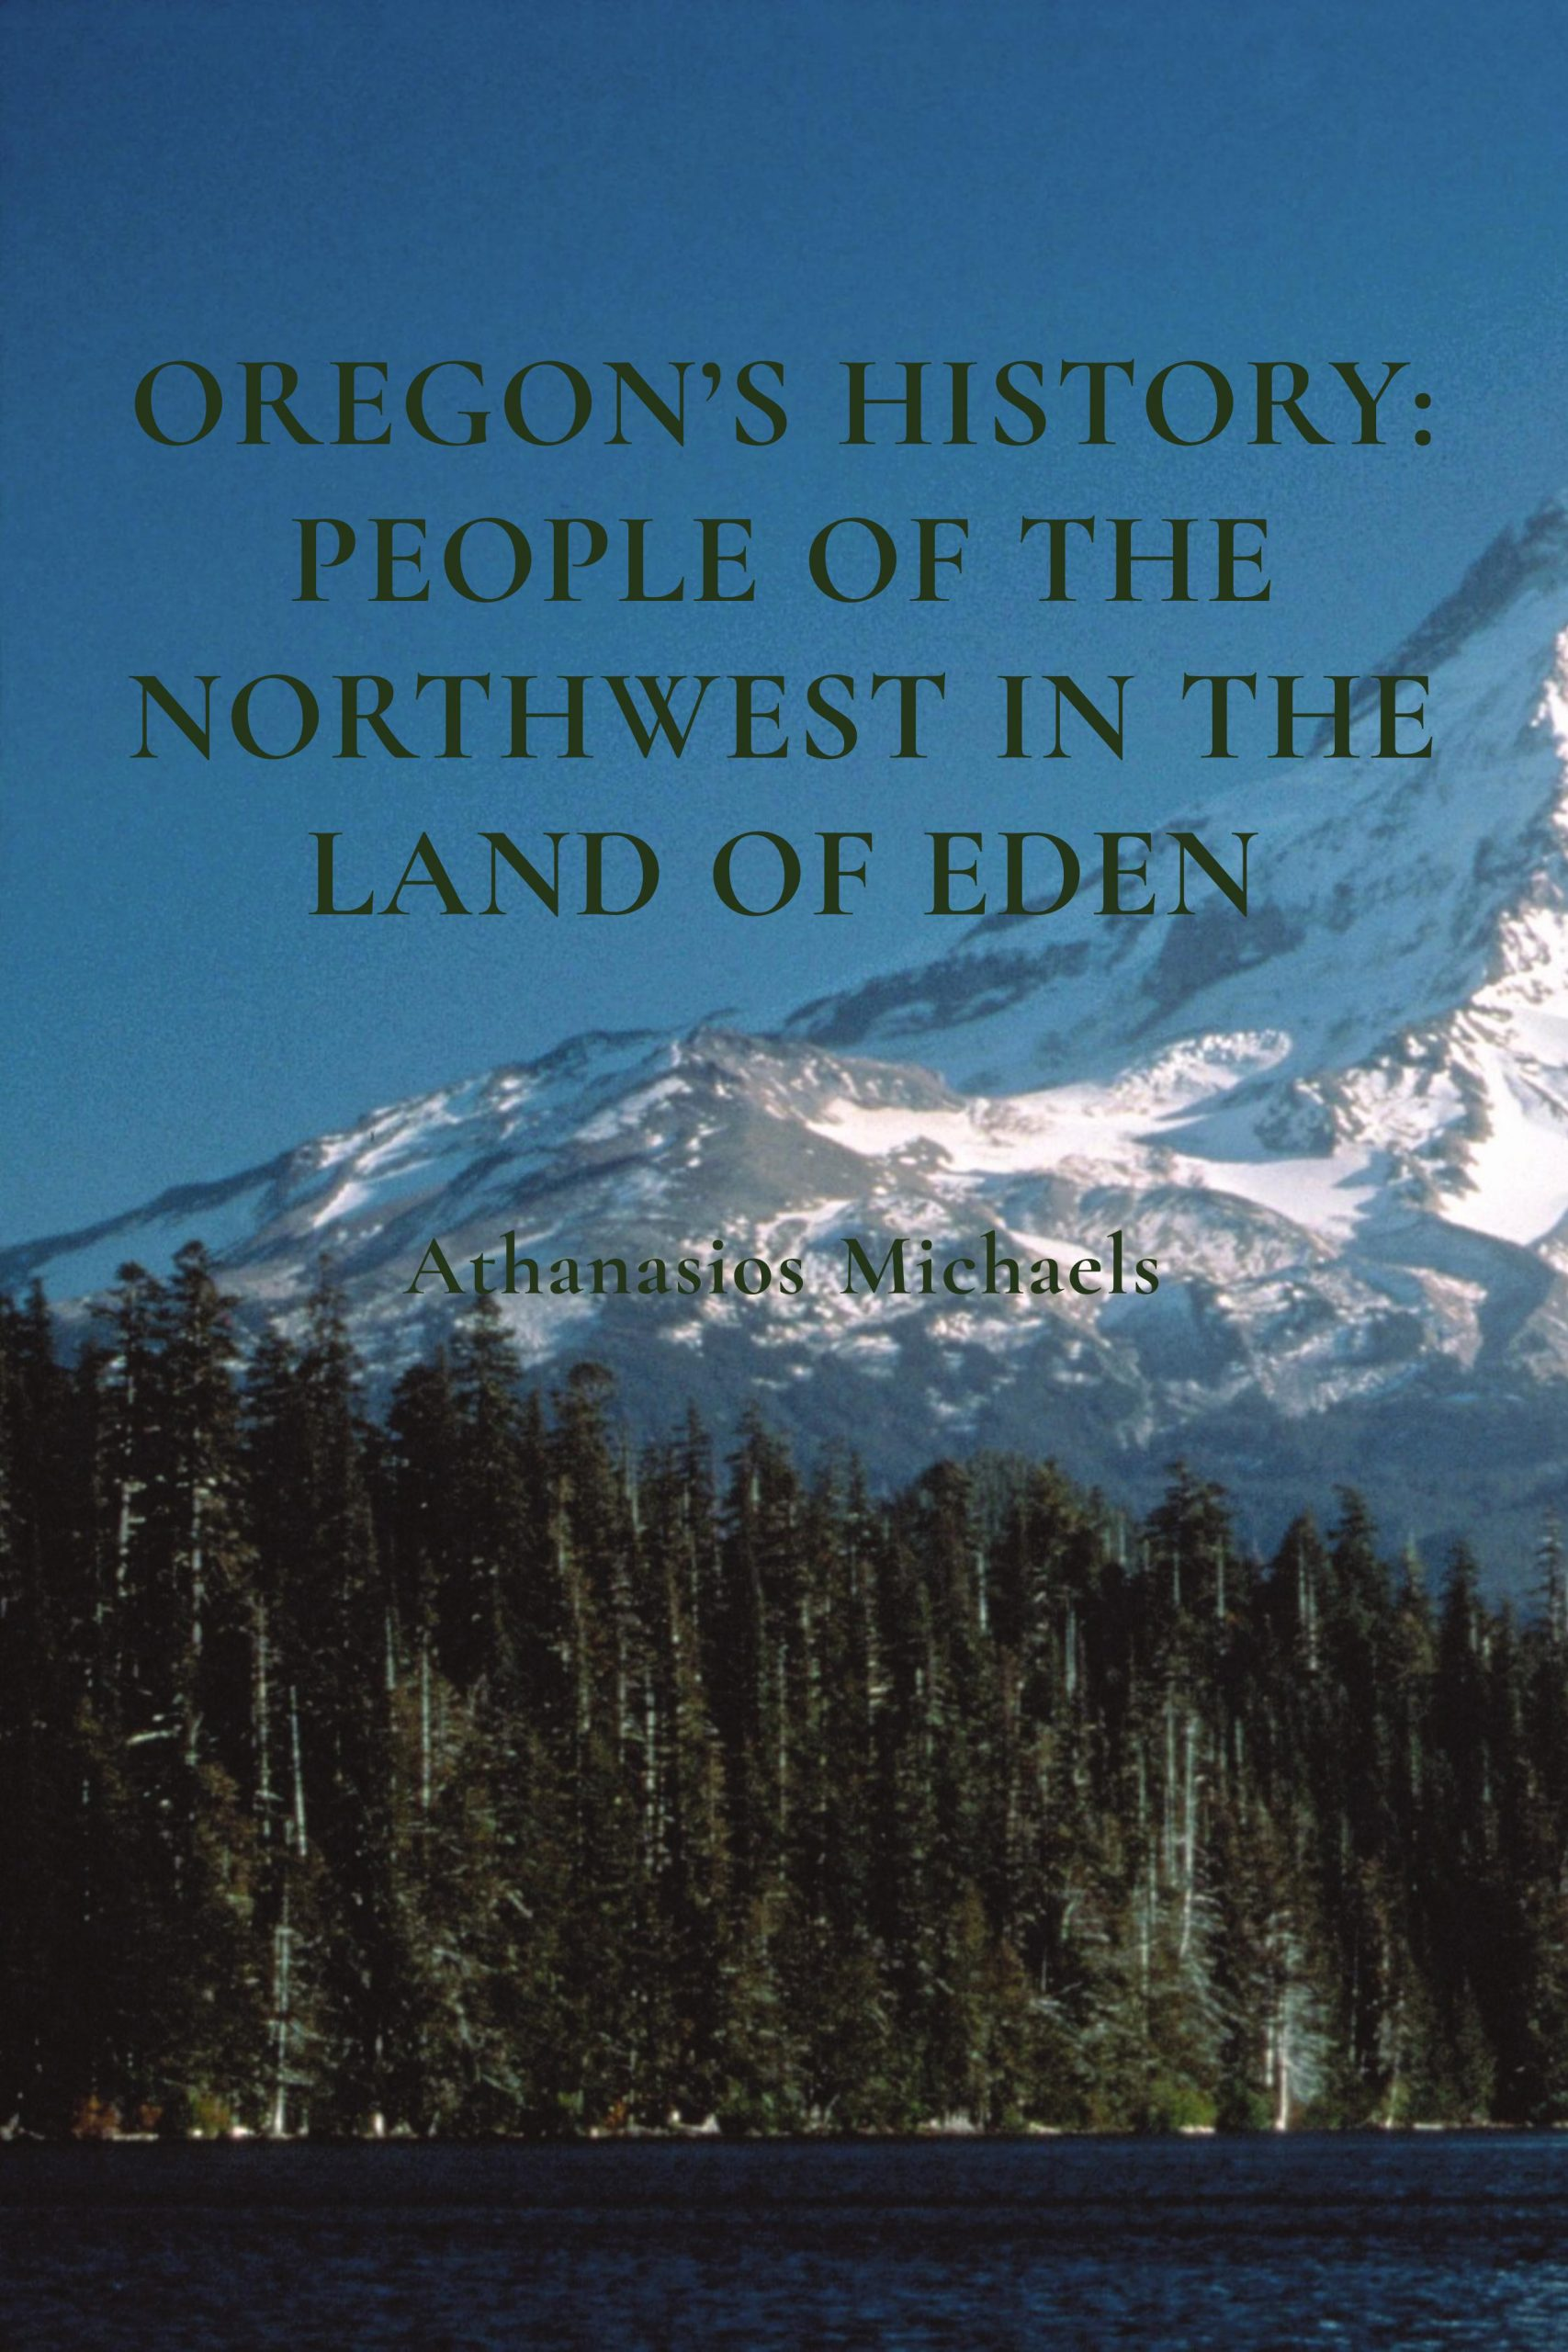 Oregon's History: People of the Northwest in the Land of Eden